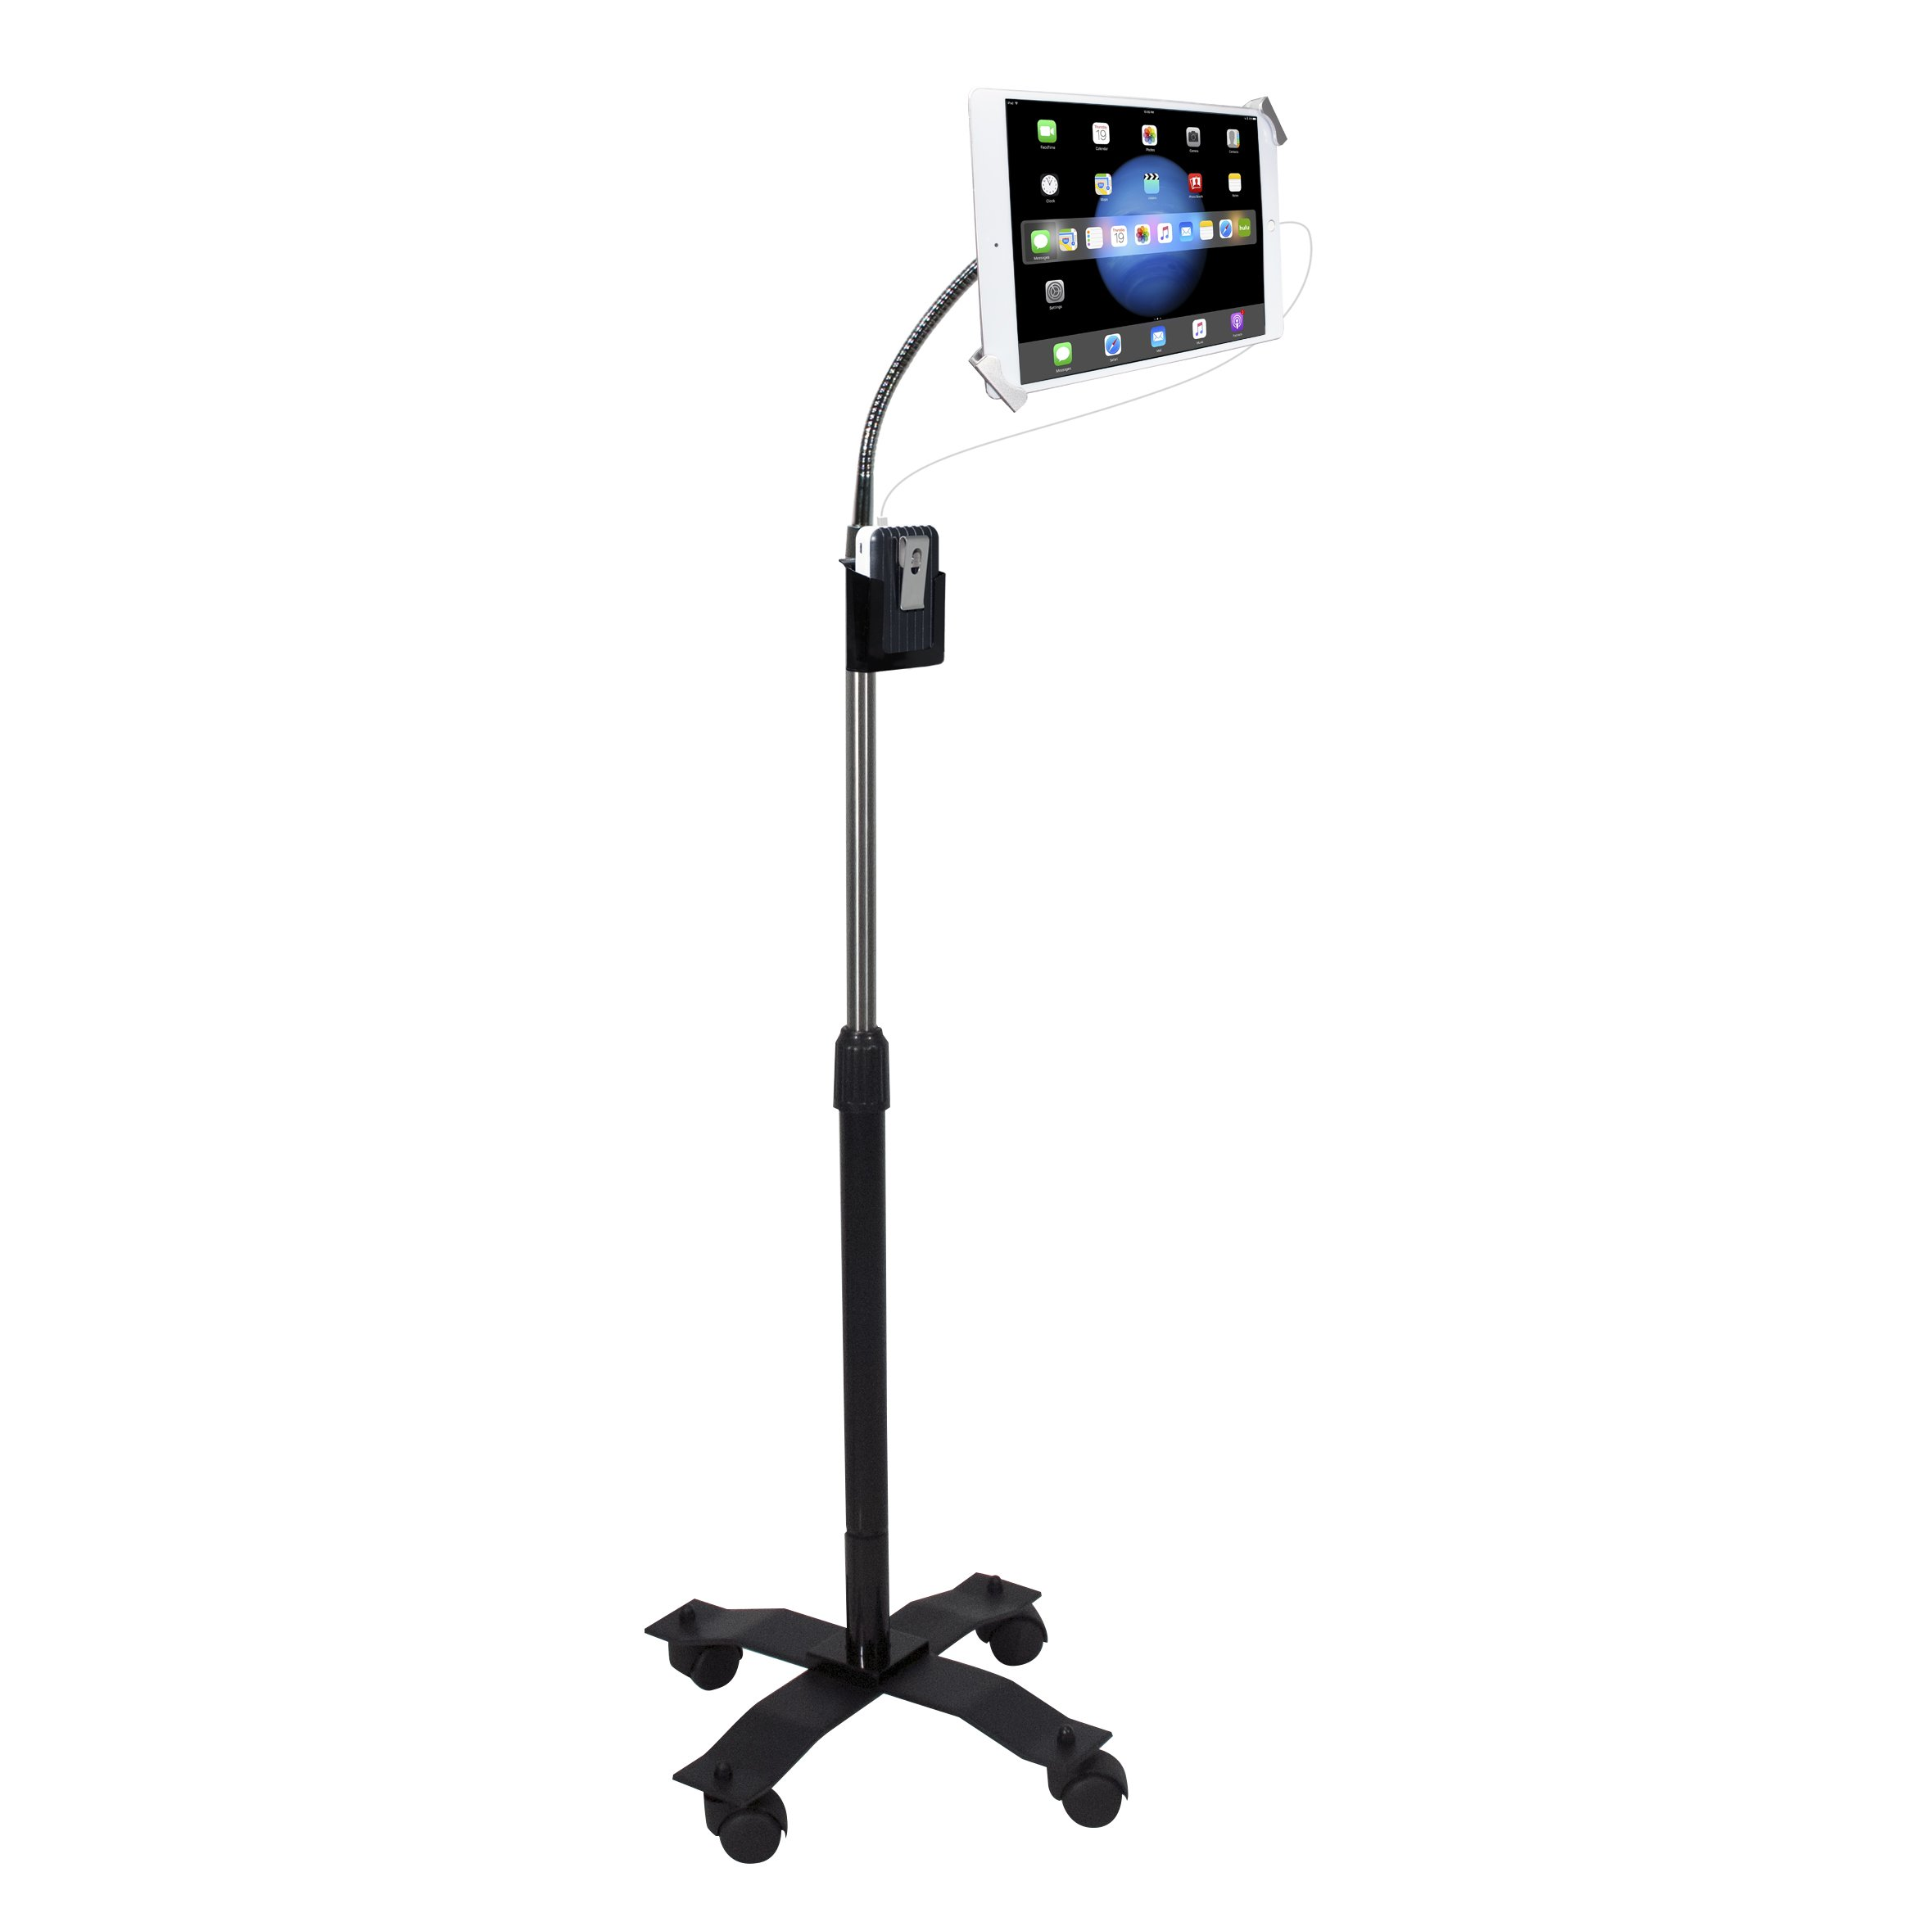 CTA Digital Compact Security Gooseneck Floor Stand for 7-13 Inch Tablets/iPad Pro 9.7, 10.5, 12.9/iPad (2017)/iPad mini/Surface Pro 4 by CTA Digital